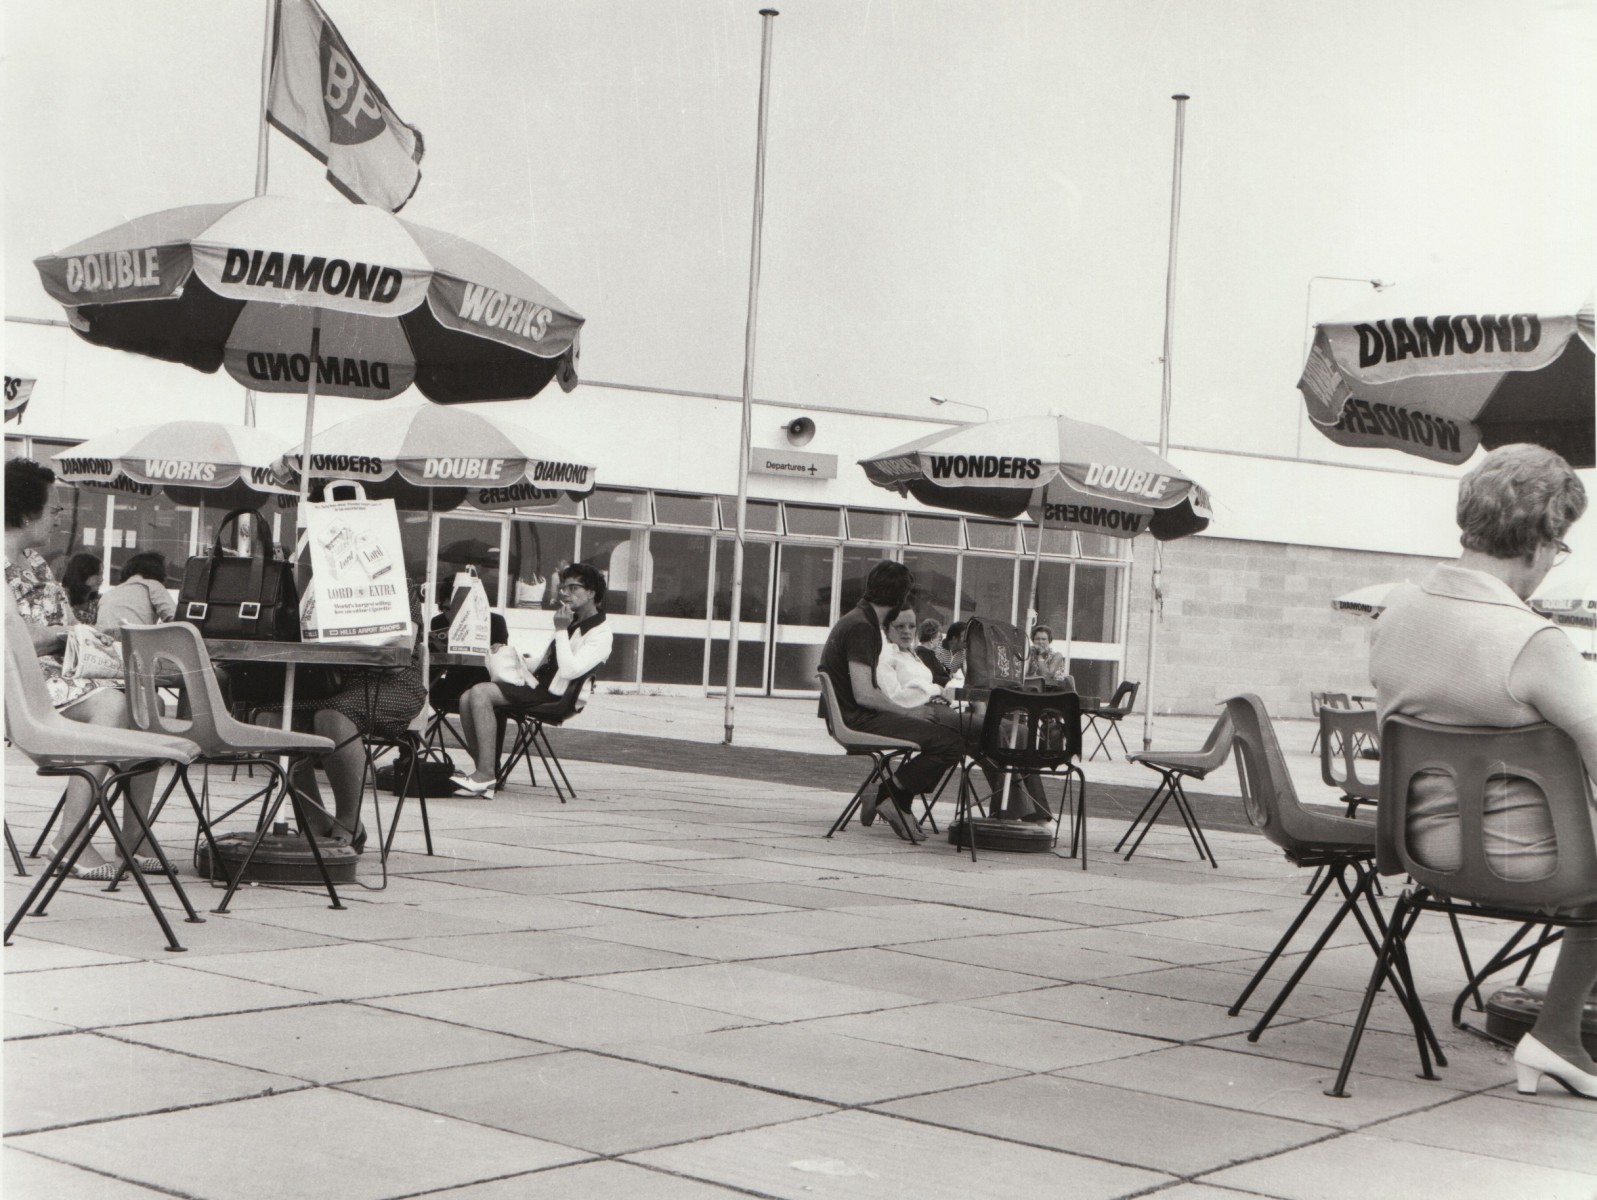 The departure lounge included an outside seating area.